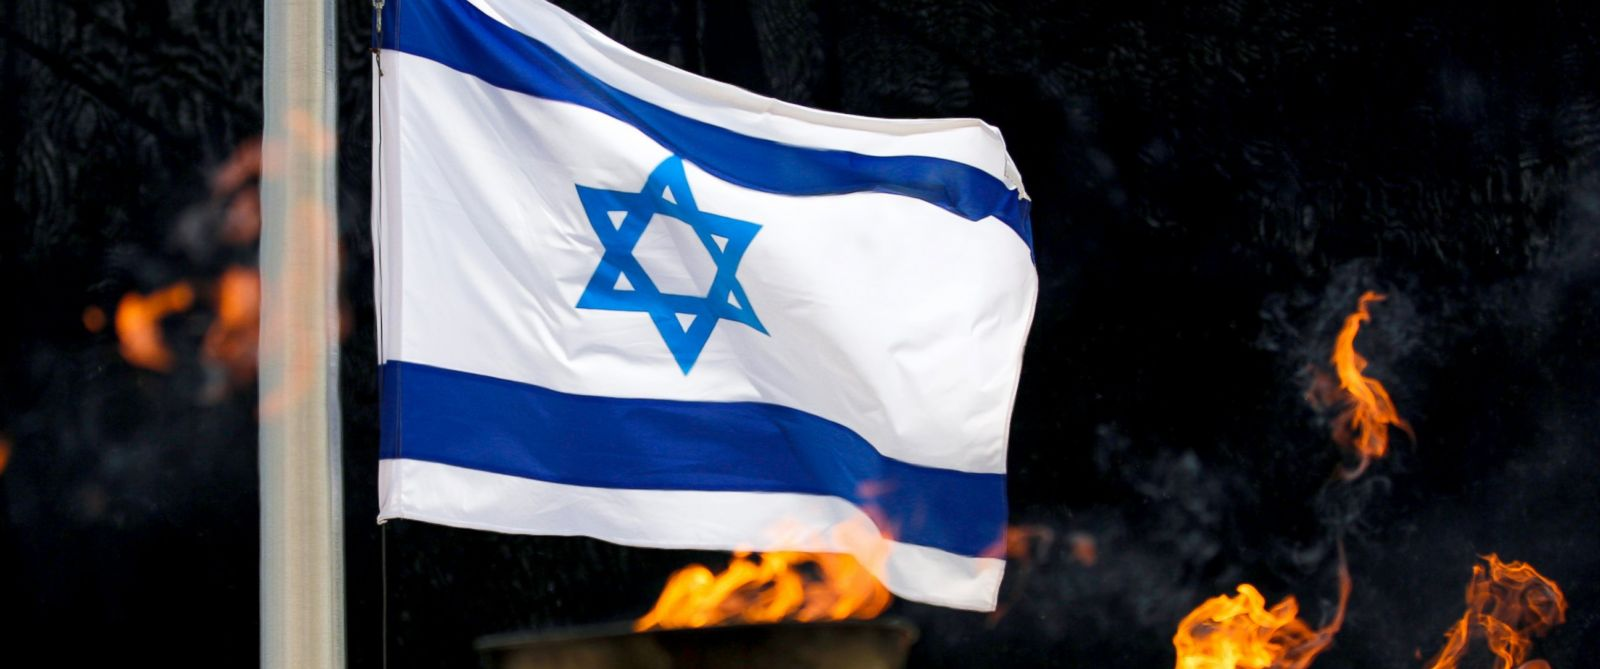 PHOTO: An Israeli flag behind torches is seen during the annual Holocaust Remembrance Day at the Yad Vashem Holocaust memorial in Jerusalem, Israel, April 24, 2017.